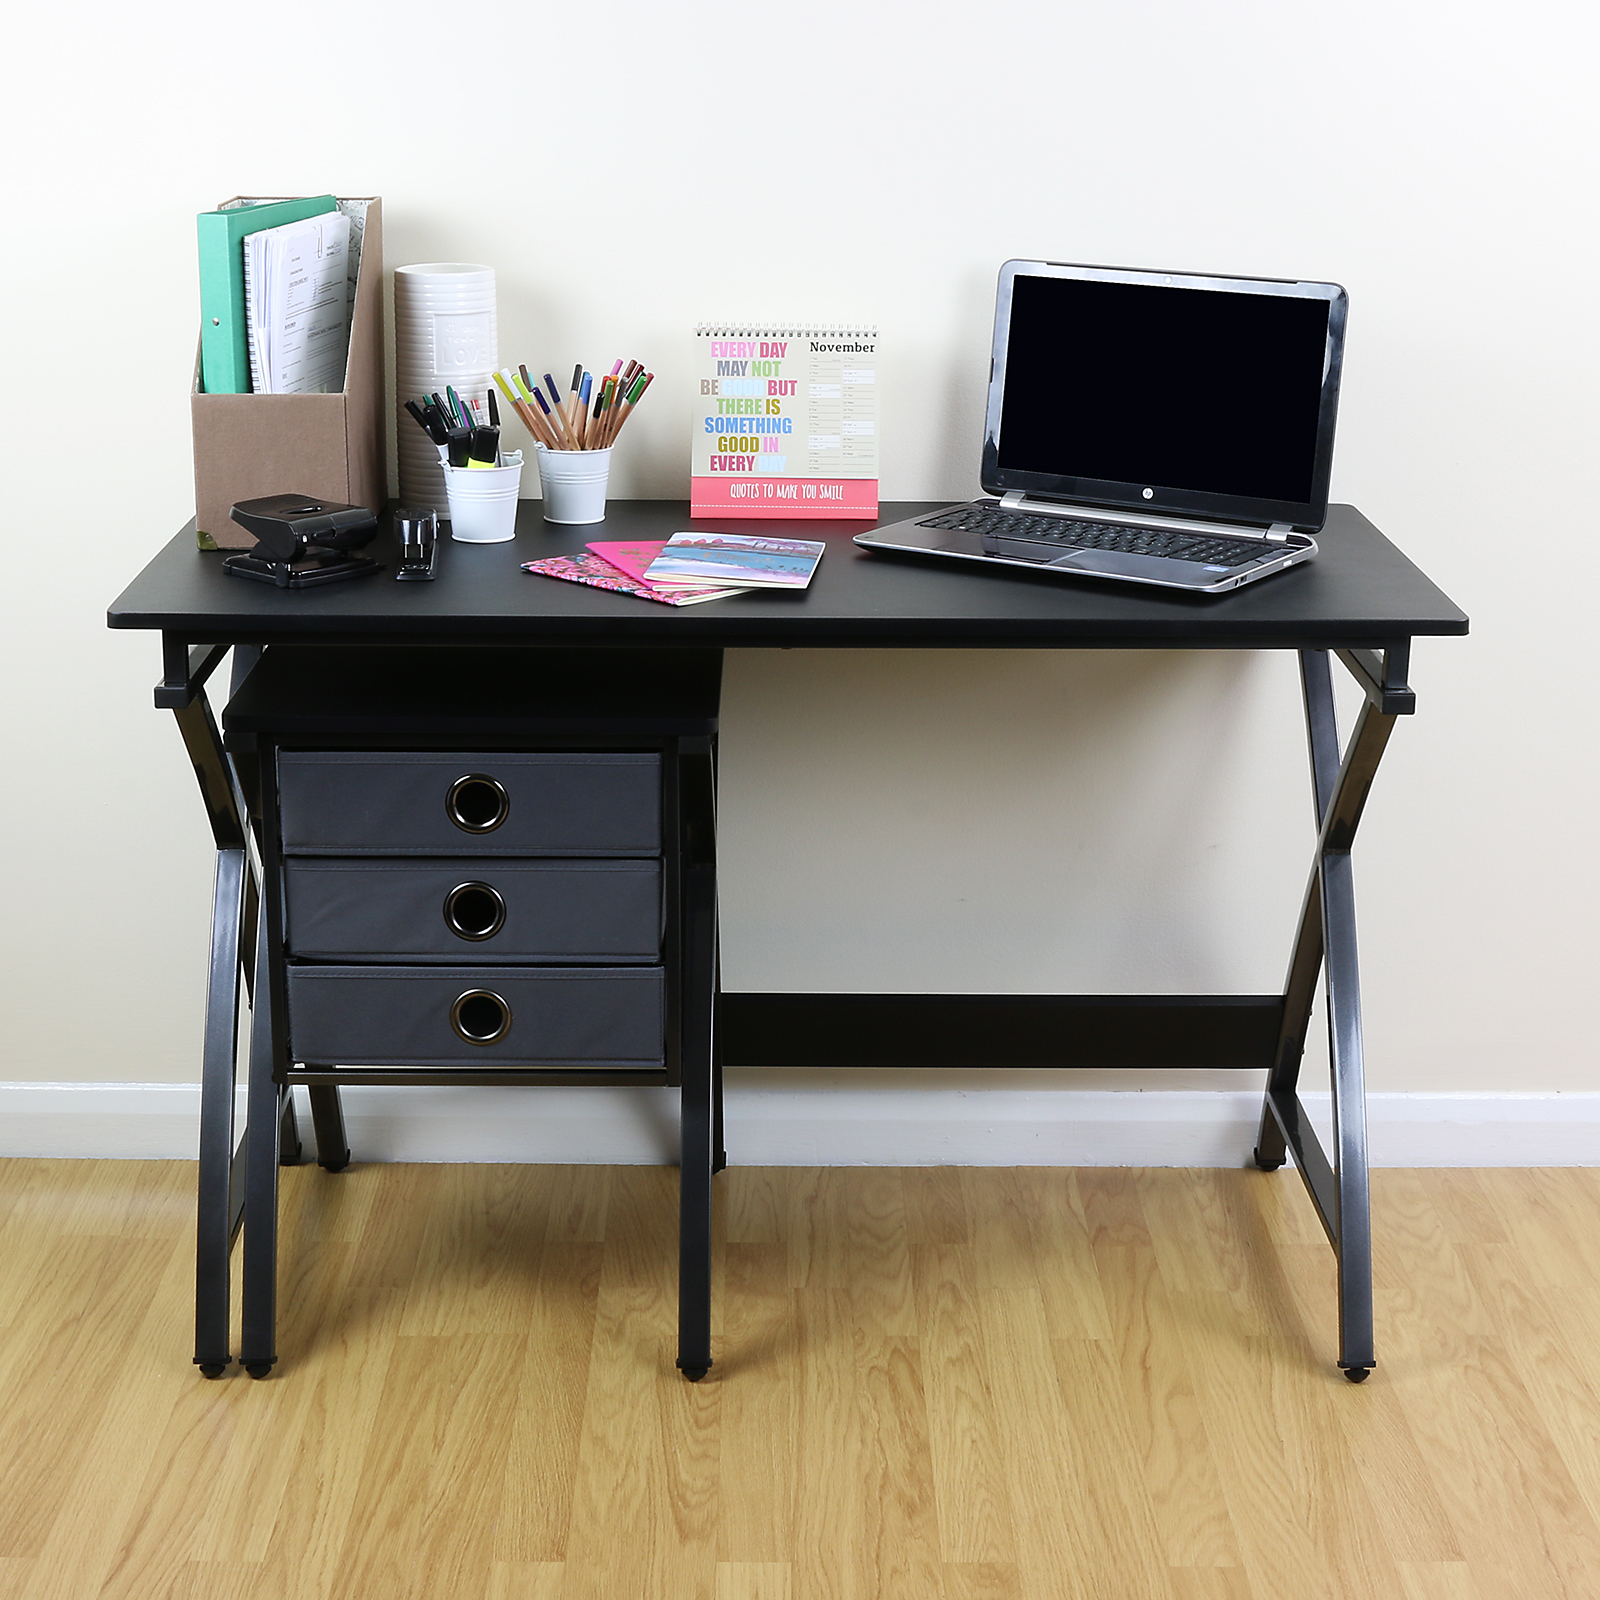 Black Rectangular Computer Desk Table Draw Unit For Home